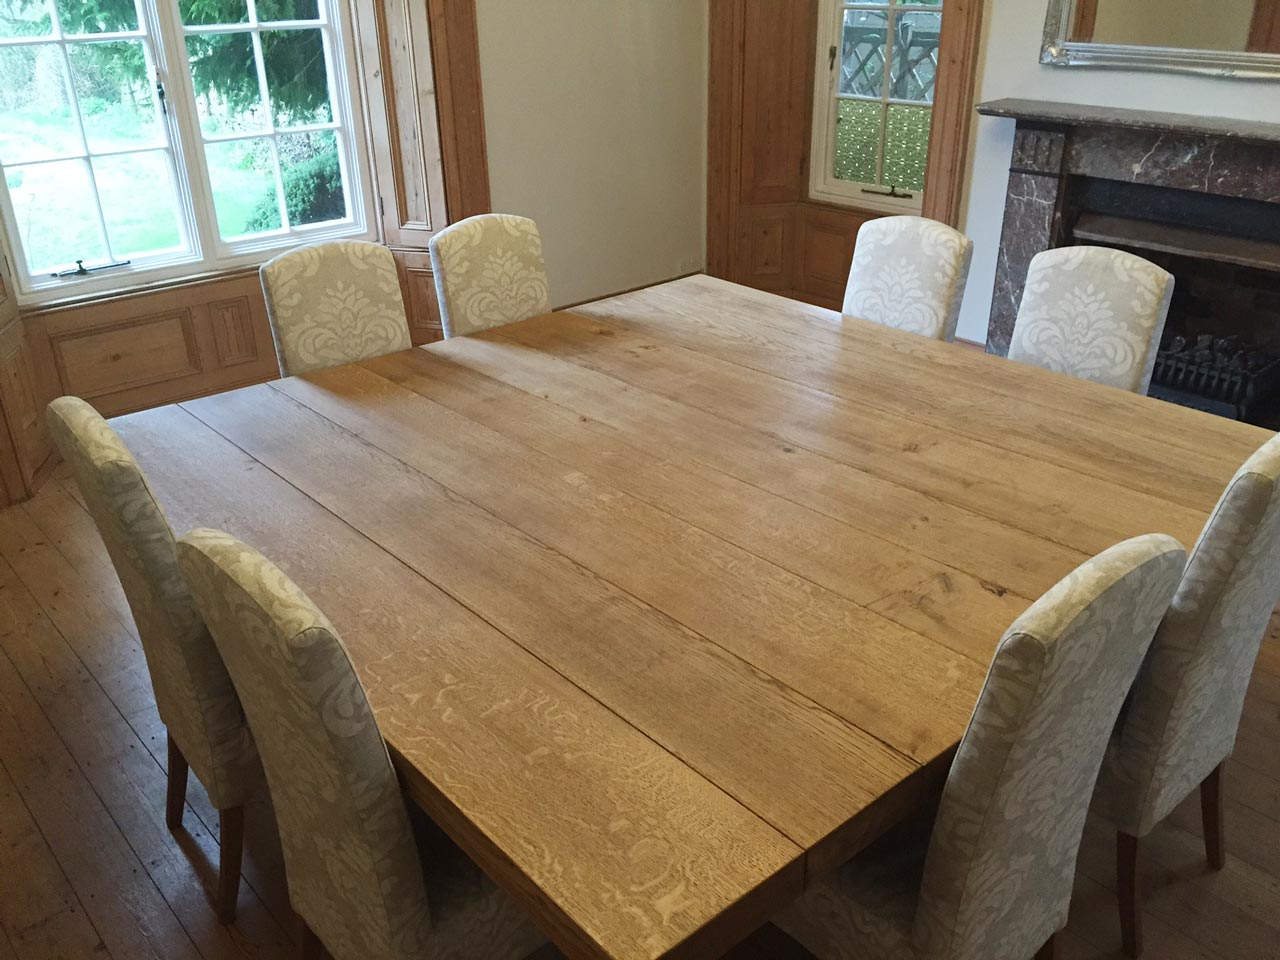 Rustic-Farmhouse-dining-table-project-297-pic1